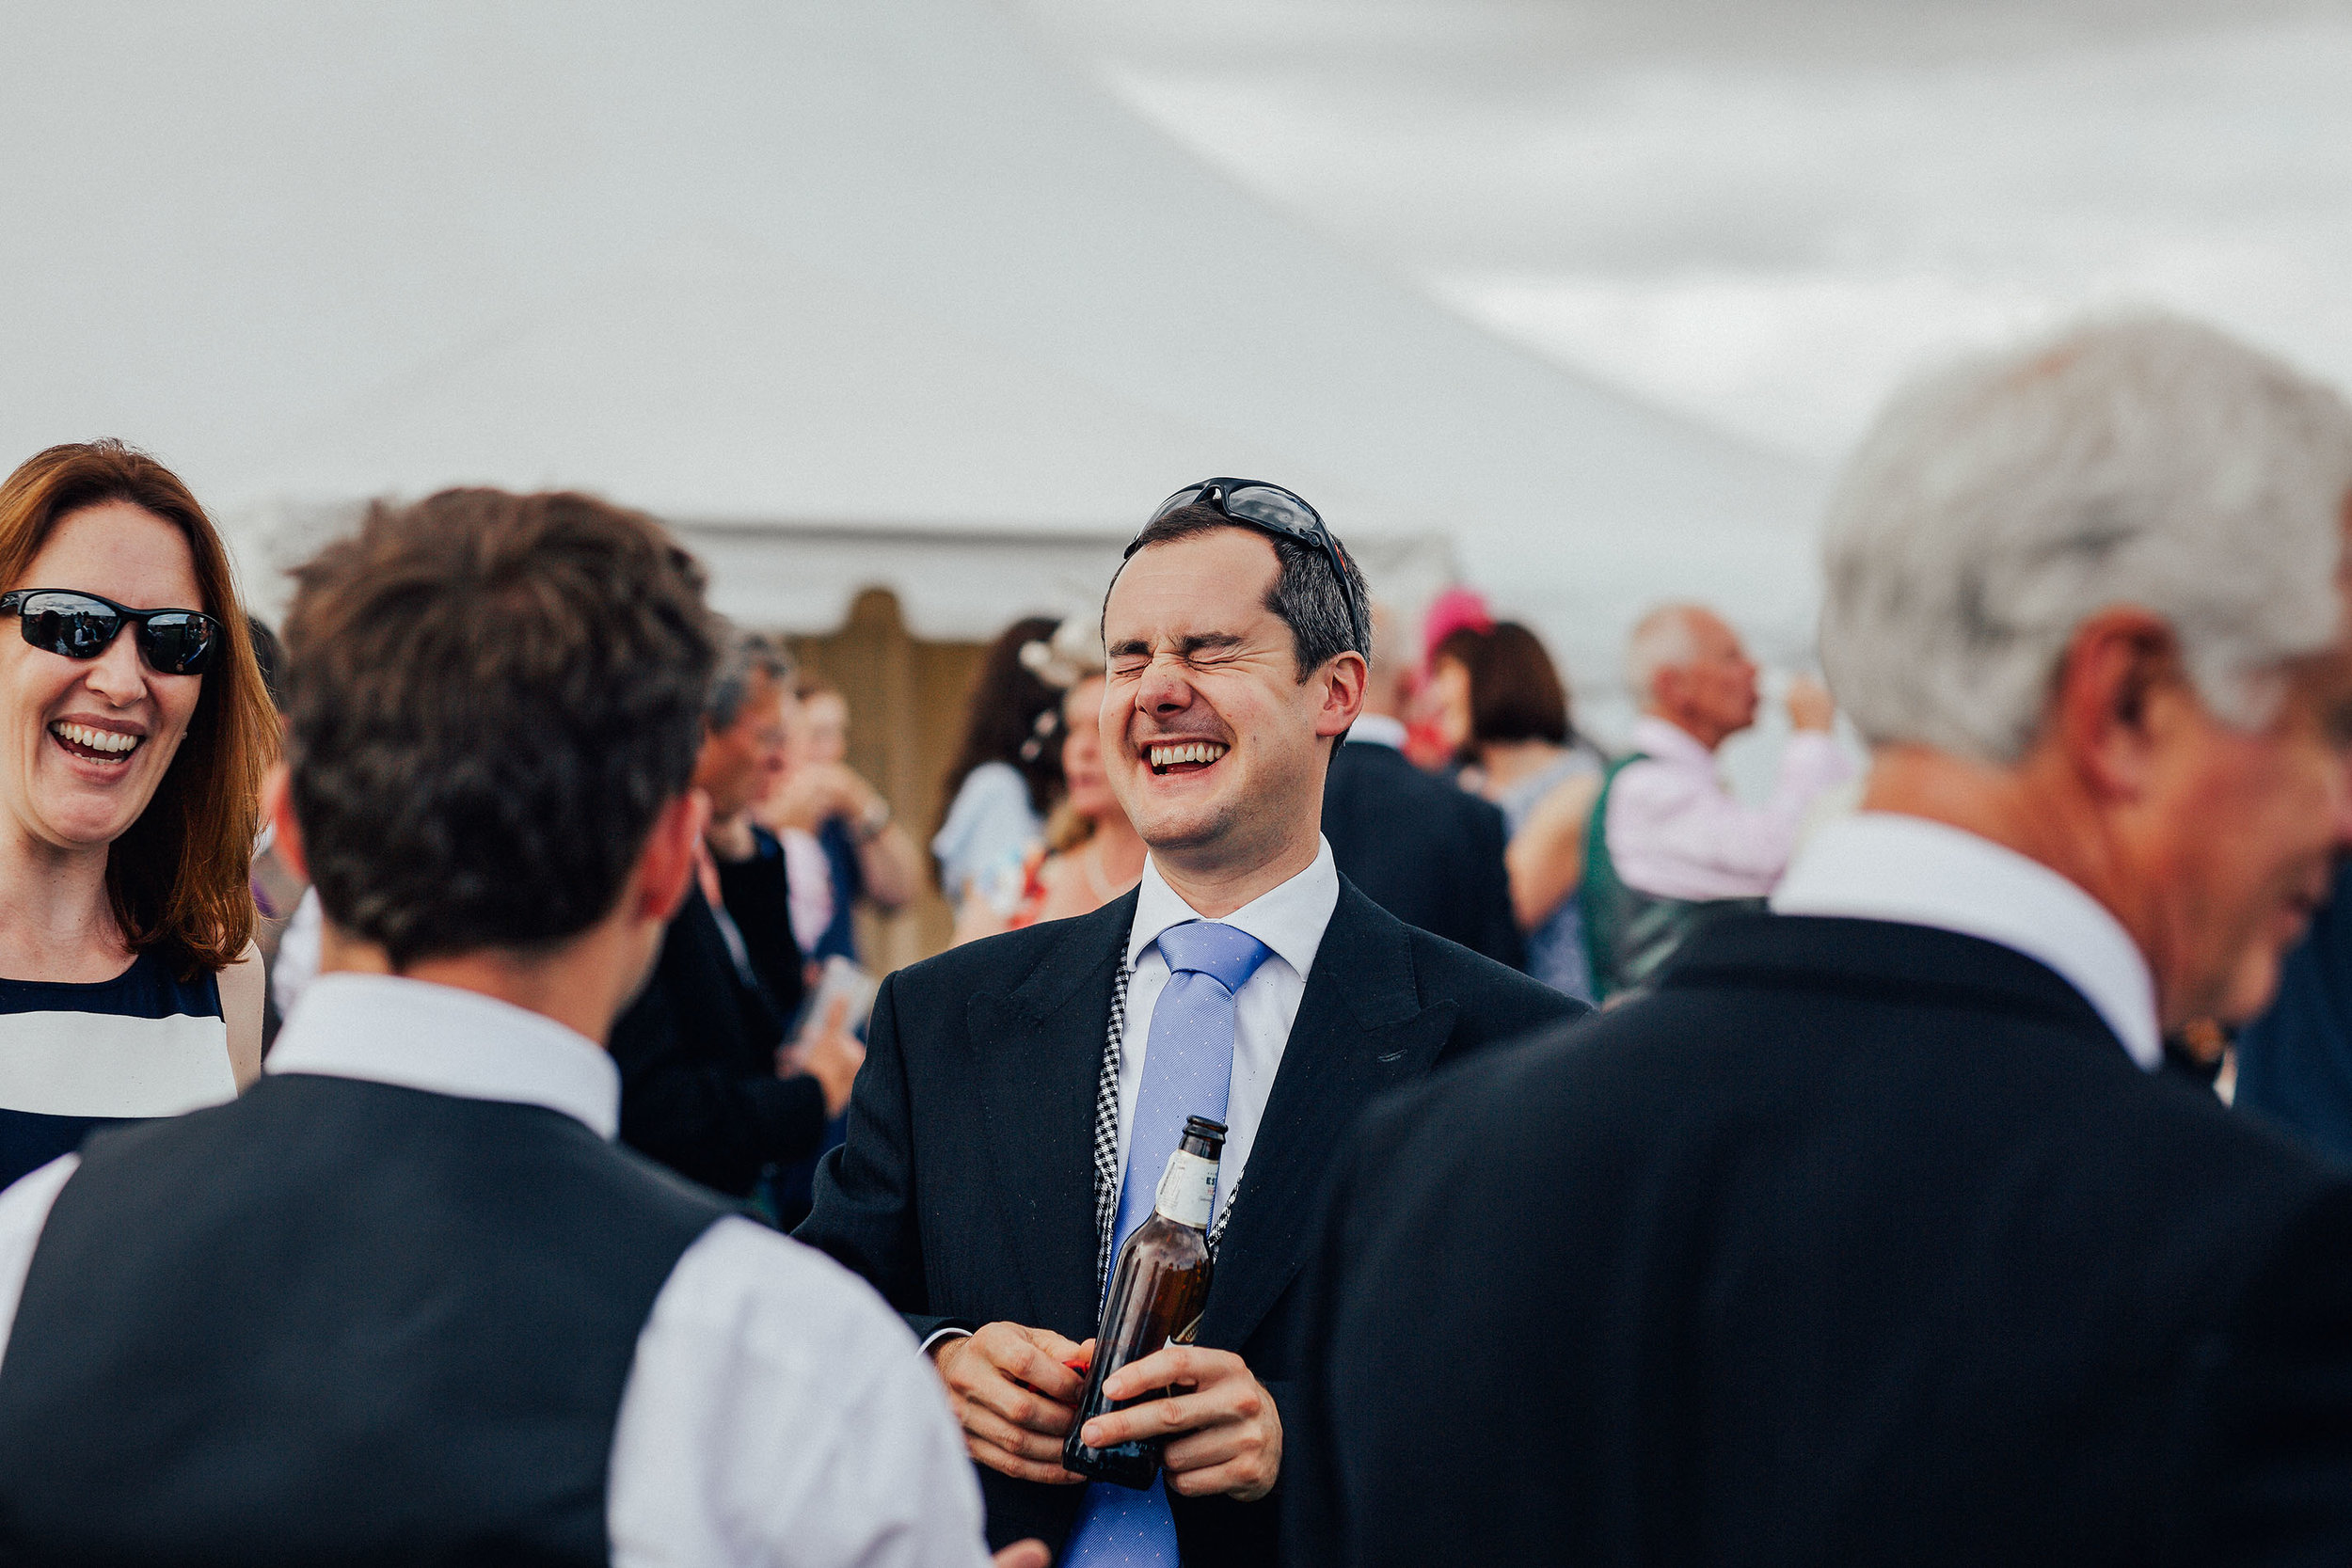 PJ_PHILLIPS_PHOTOGRAPHY_2018_SCOTLAND_WEDDING_PHOTOOGRAPHER_151.jpg